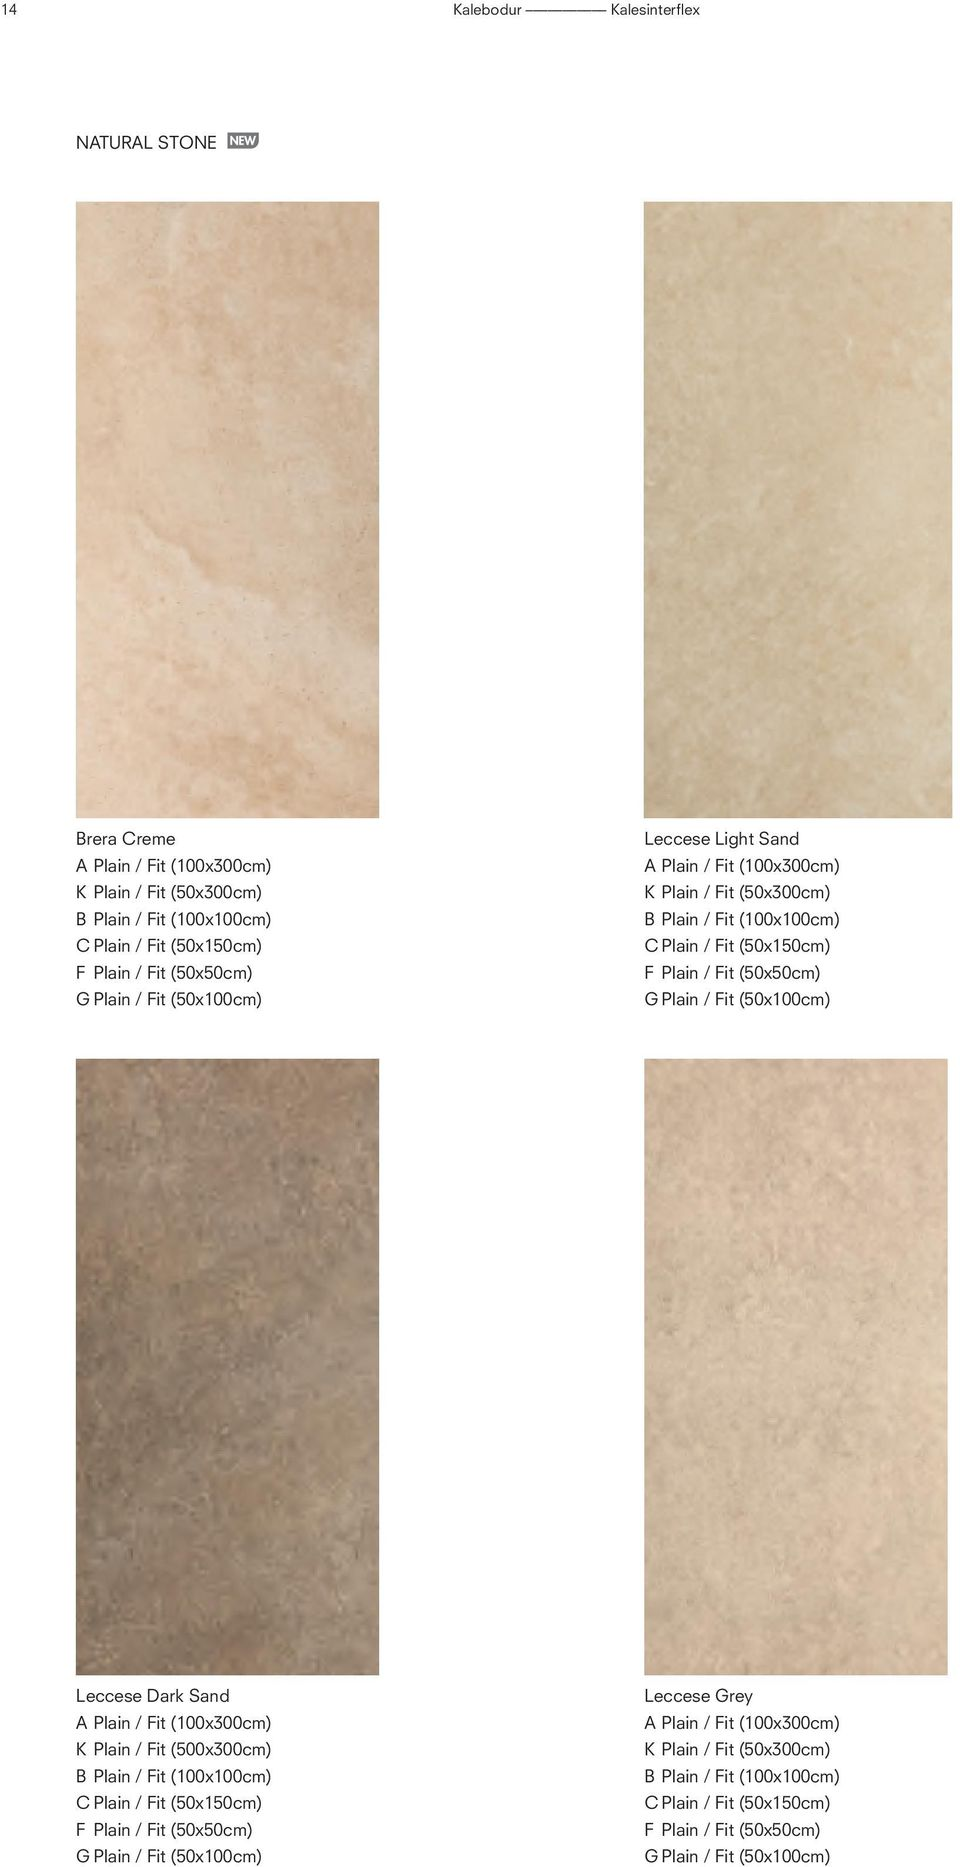 (50x50cm) G Plain / Fit (50x100cm) Leccese Dark Sand A Plain / Fit (100x300cm) K Plain / Fit (500x300cm) B Plain / Fit (100x100cm) C Plain / Fit (50x150cm) F Plain / Fit